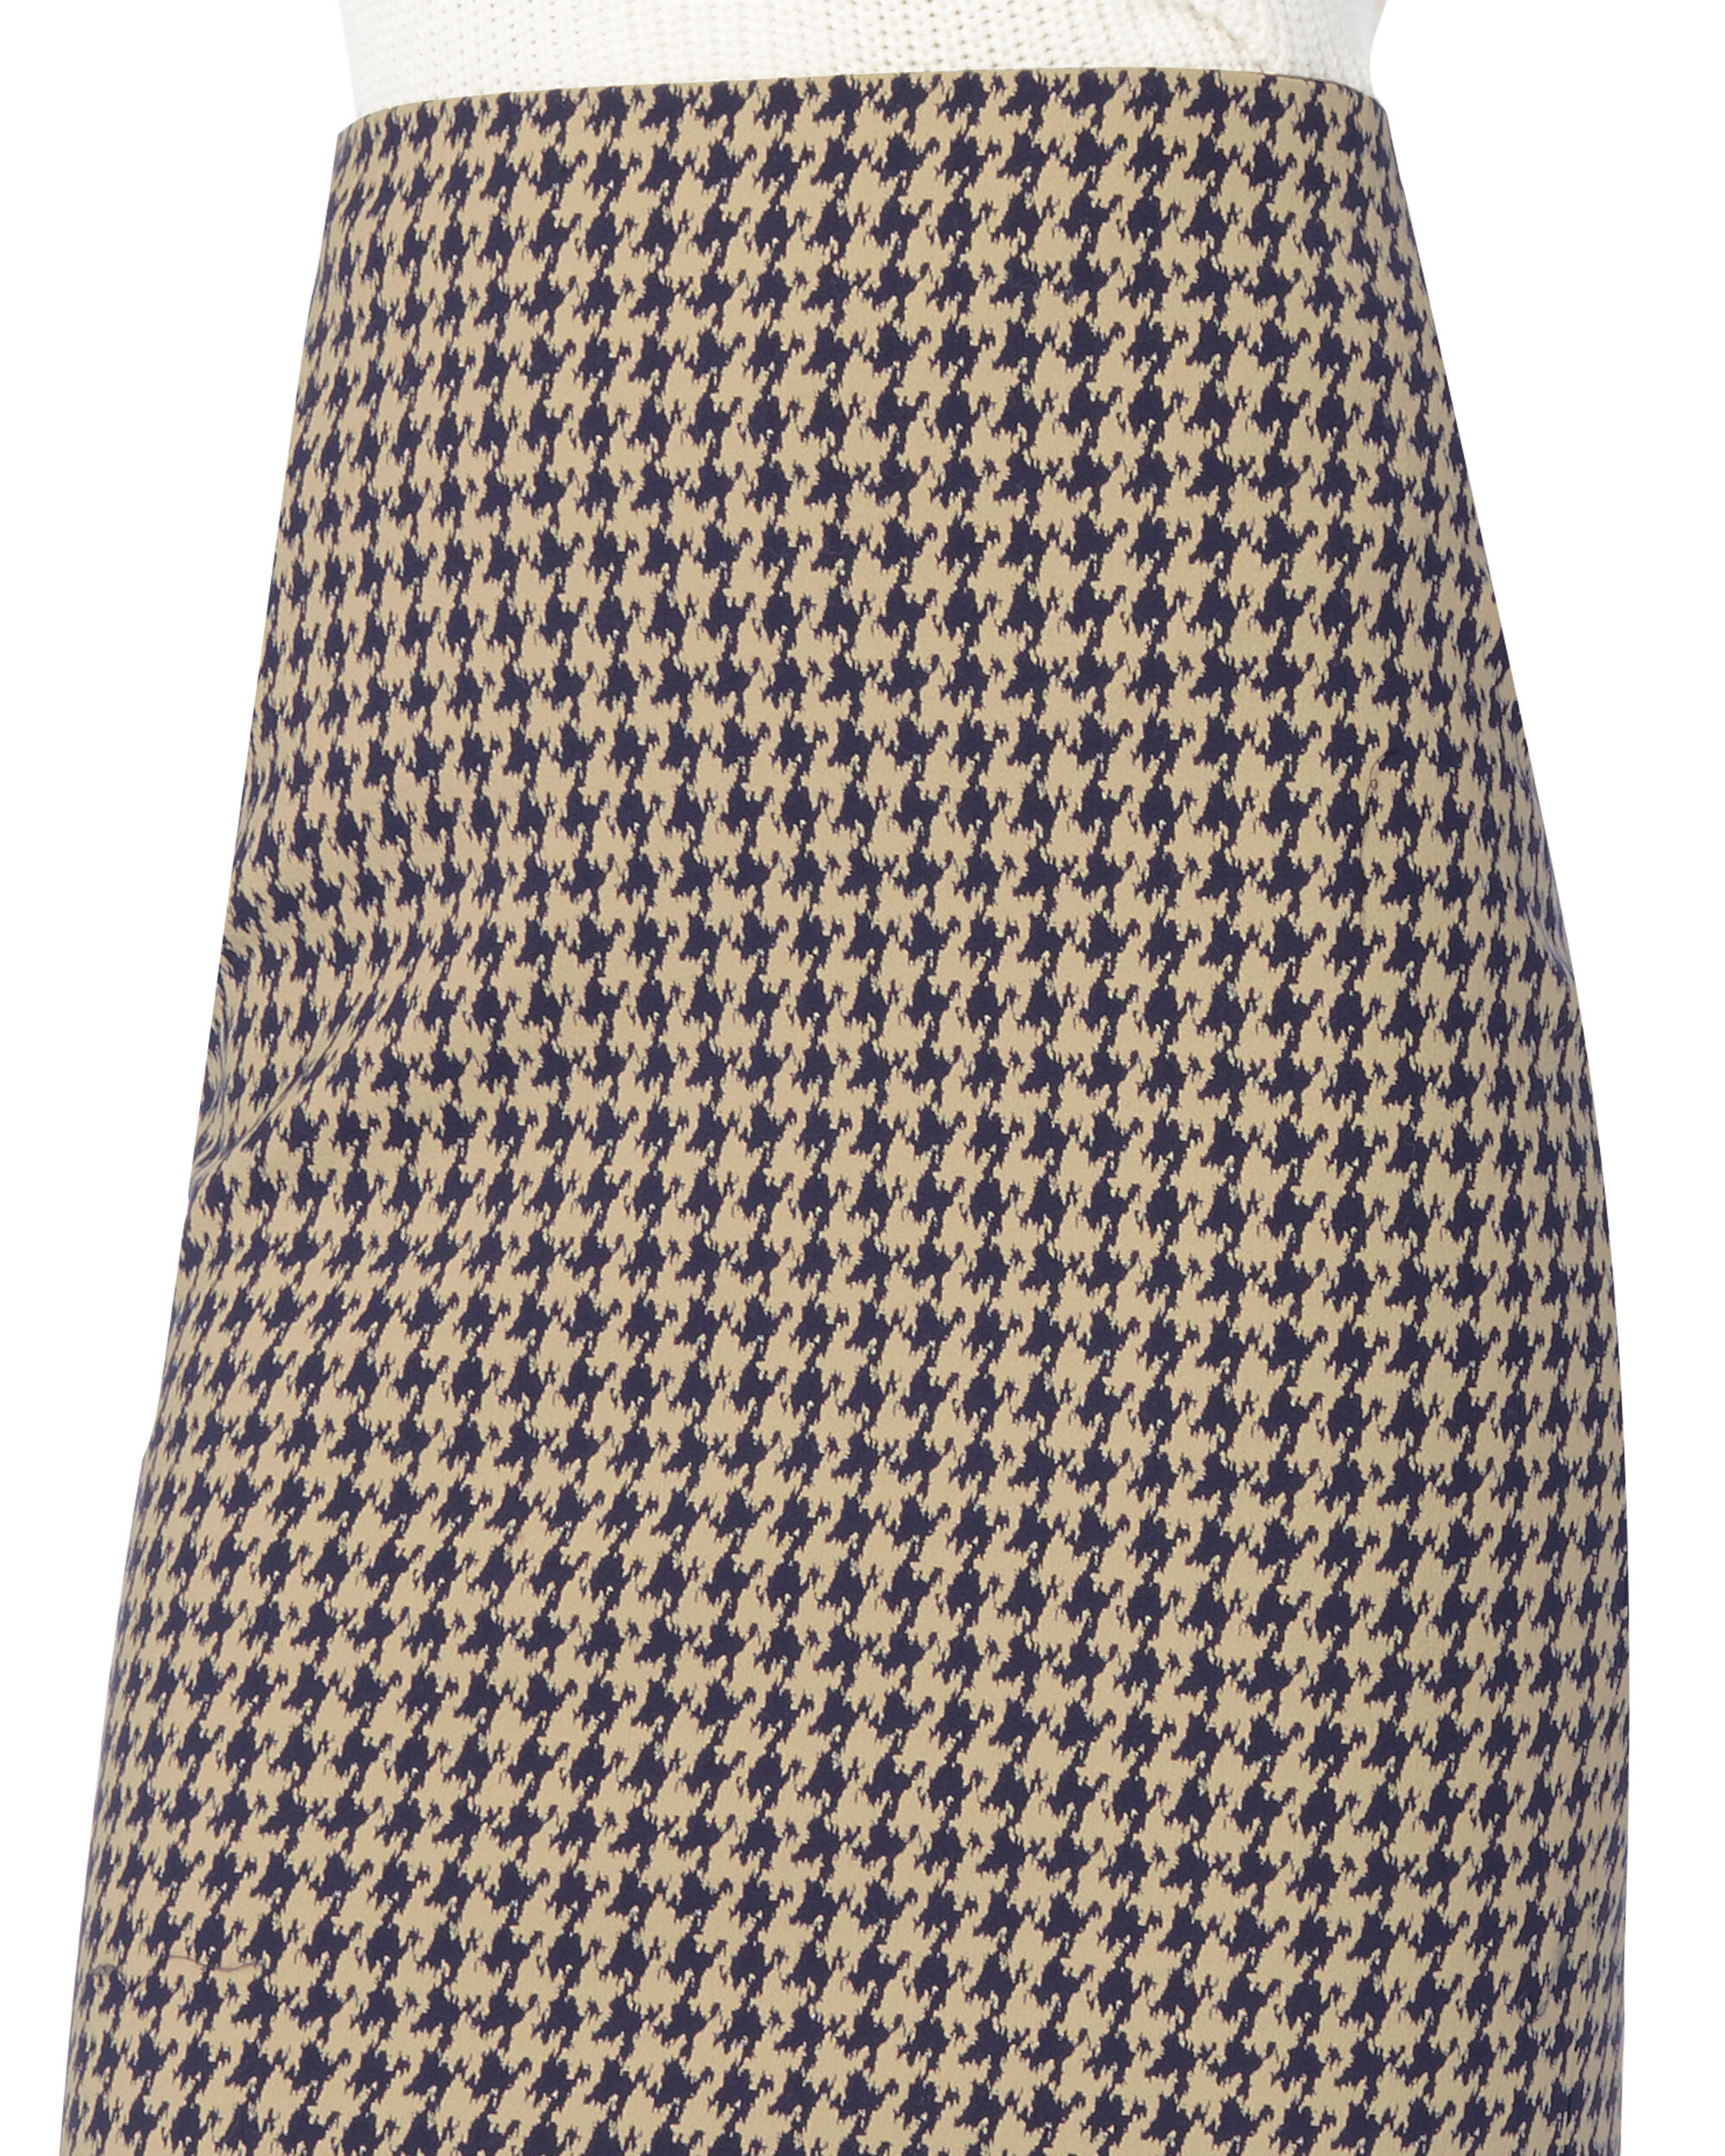 Houndstooth Skirt, MULT-MED 2, hi-res